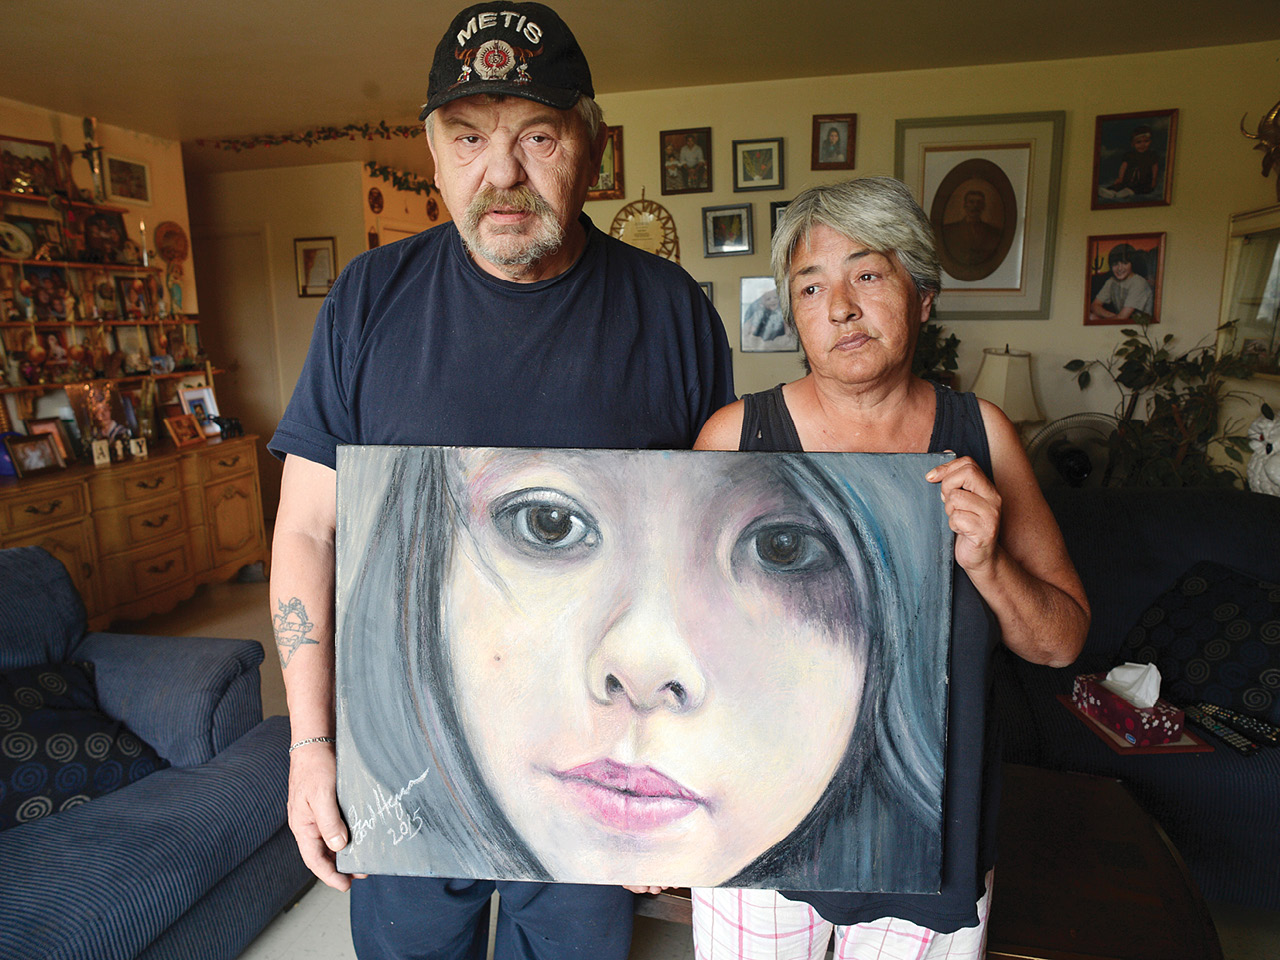 A photo of Joe and Thelma Favel holding an image of their niece Tina Fontaine, an Anishinaabe teenager who was murdered in Winnipeg in 2014. Her death galvanized national support for an inquiry into missing and murdered Indigenous women and girls.